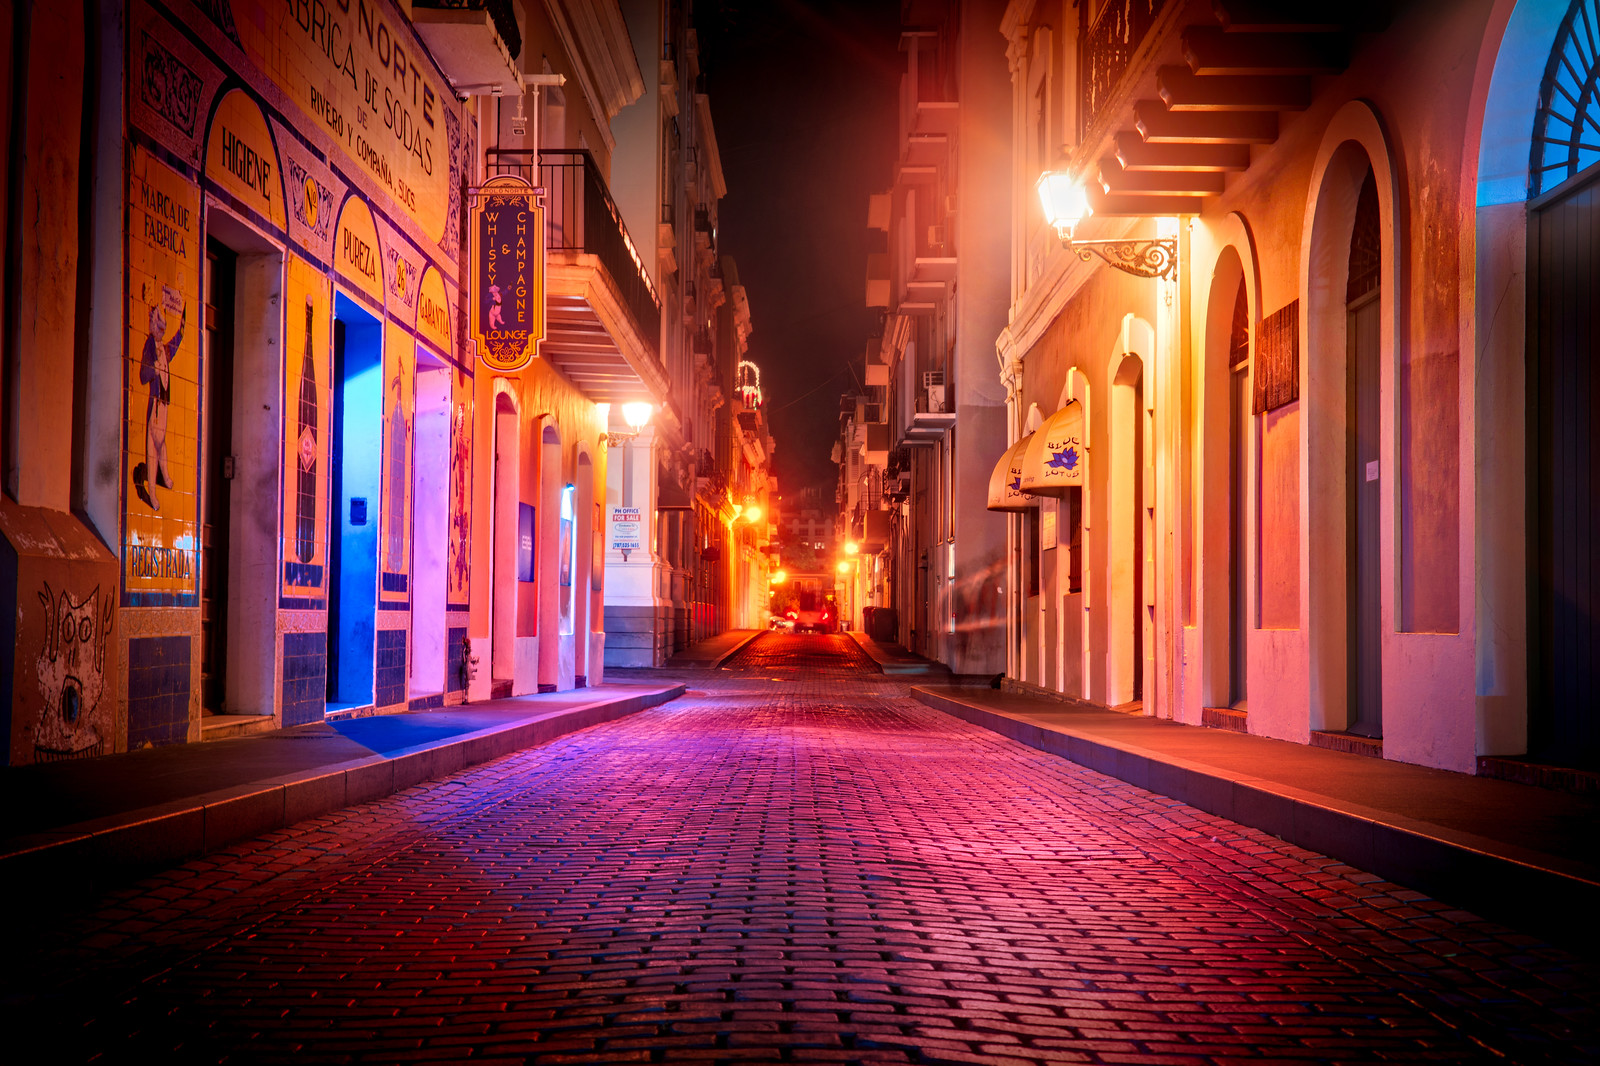 The Streets of Old San Juan at night